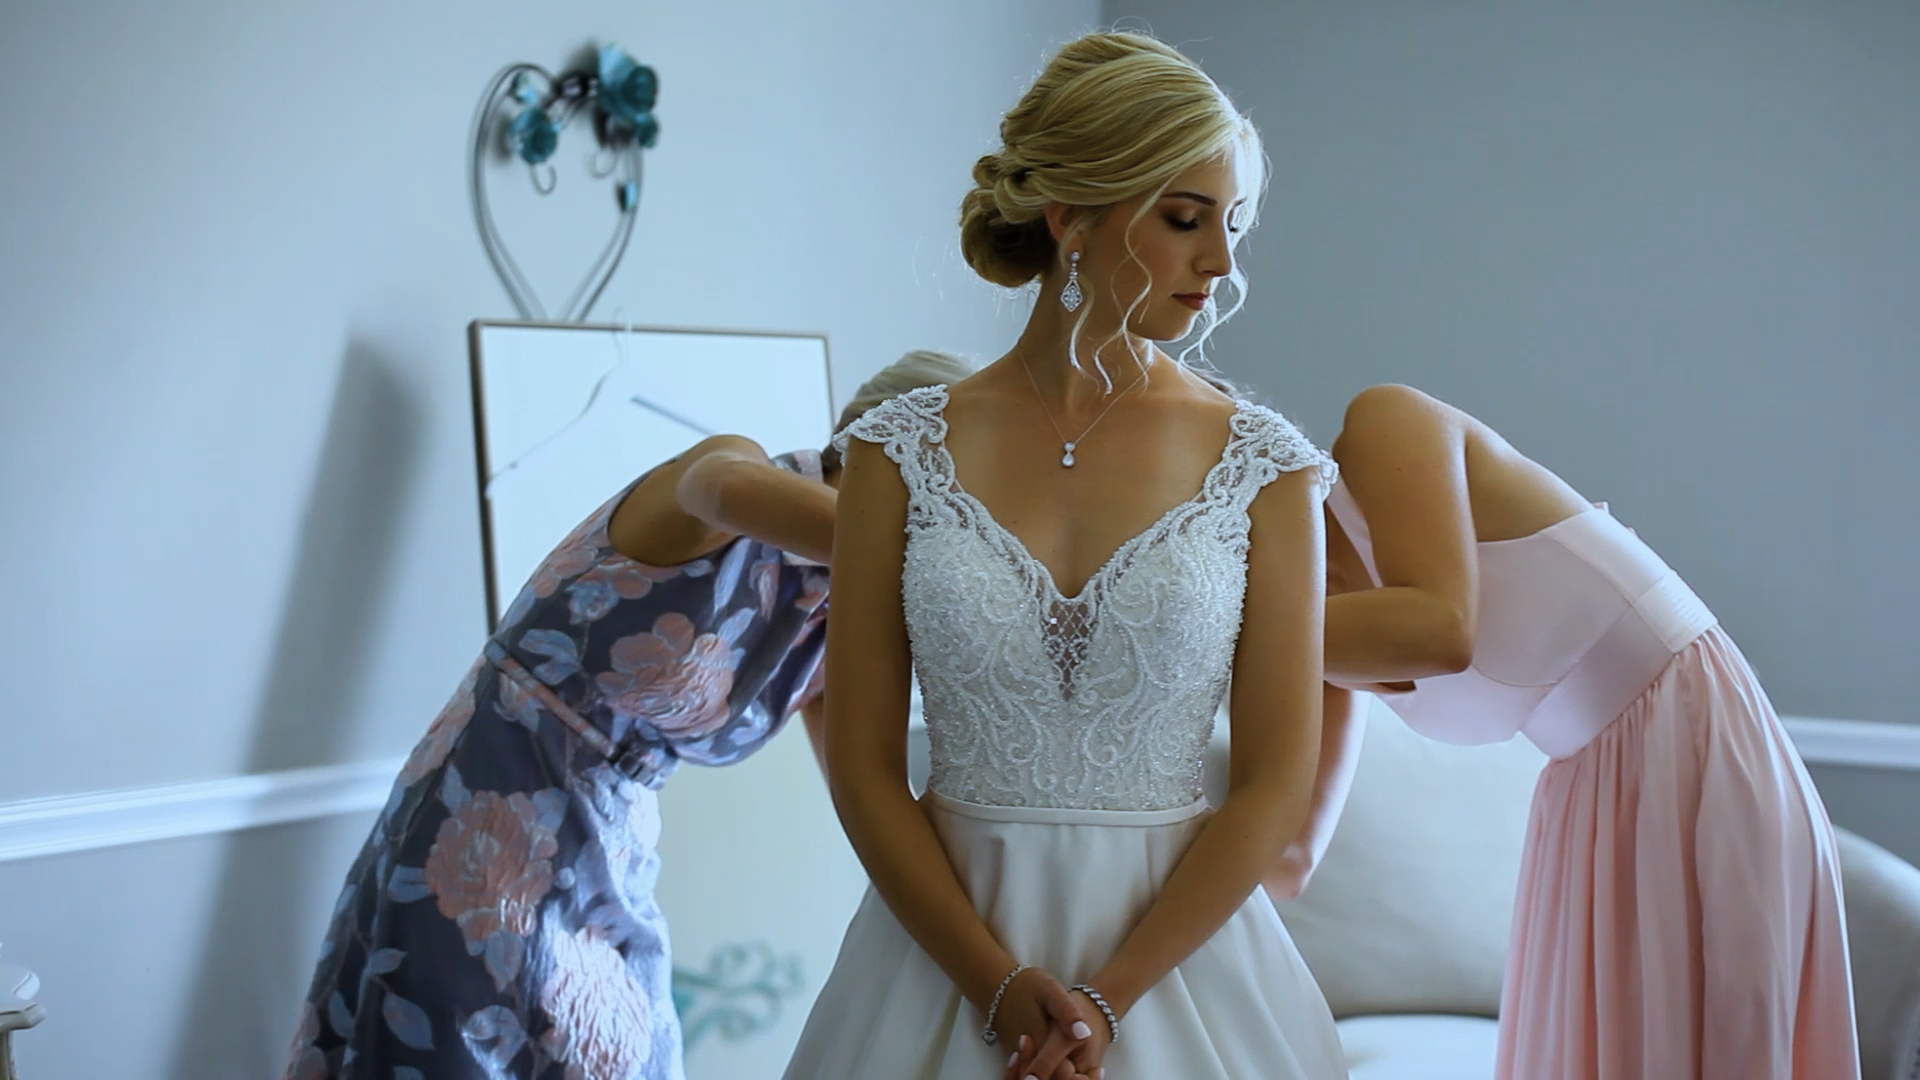 bride-putting-on-dress-not-white-balanced